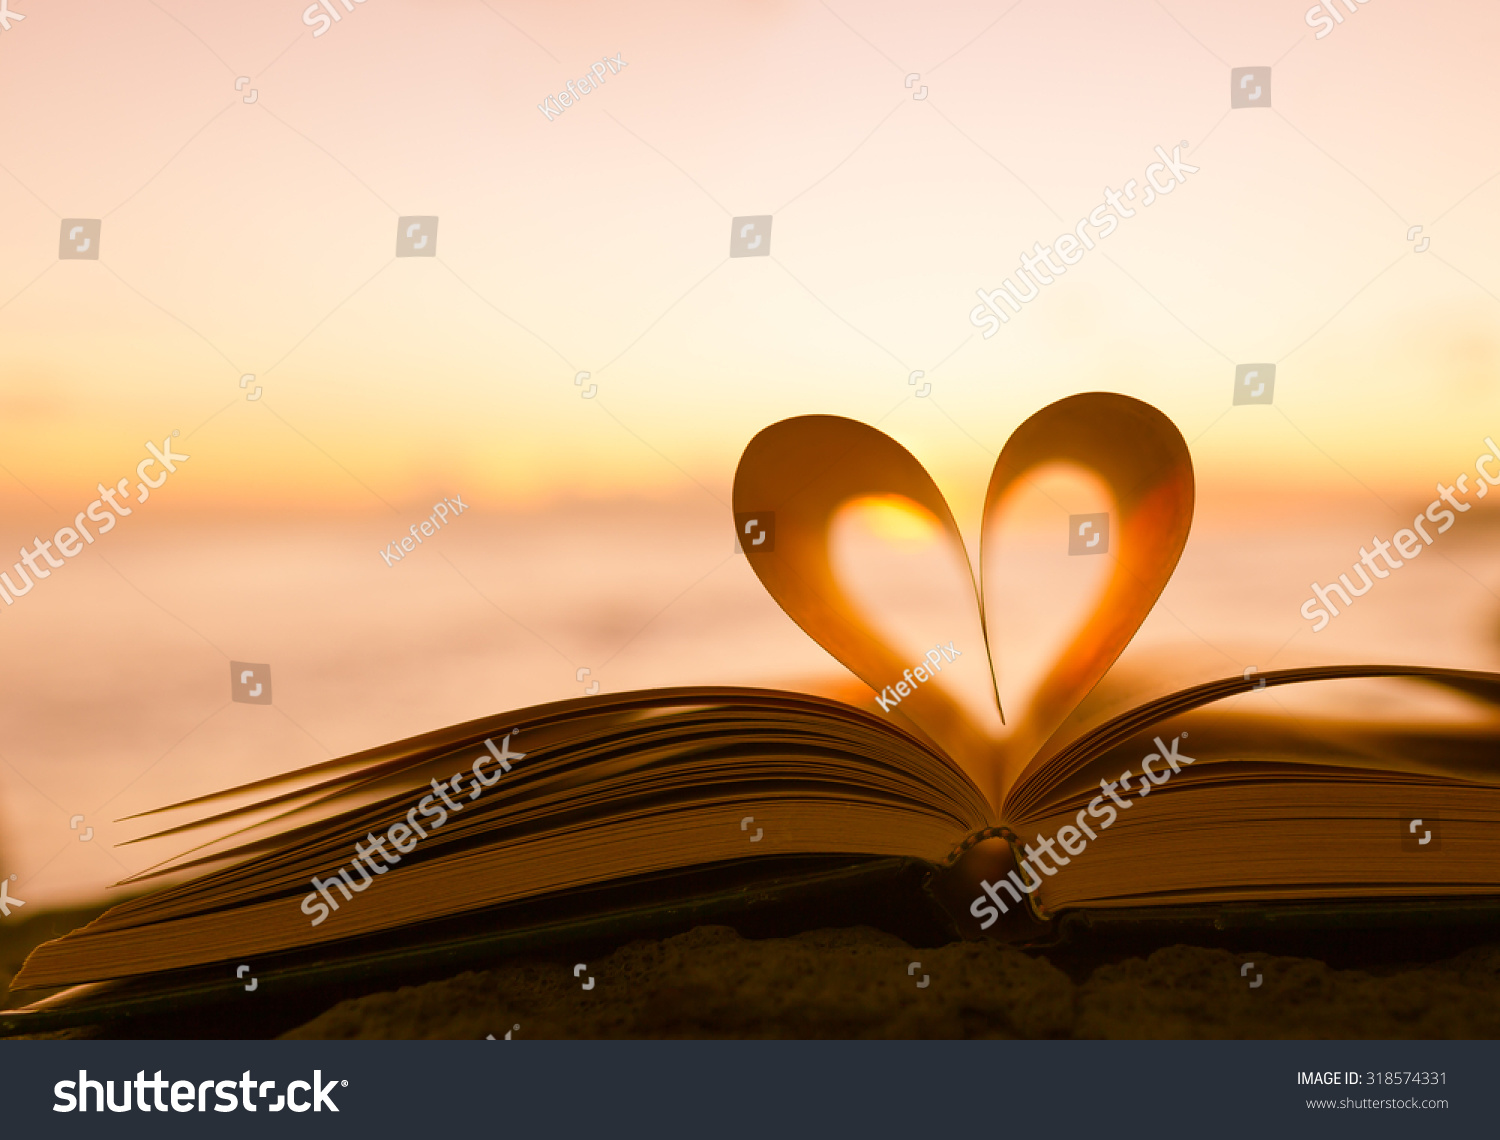 Heart from a book page against a beautiful sunset